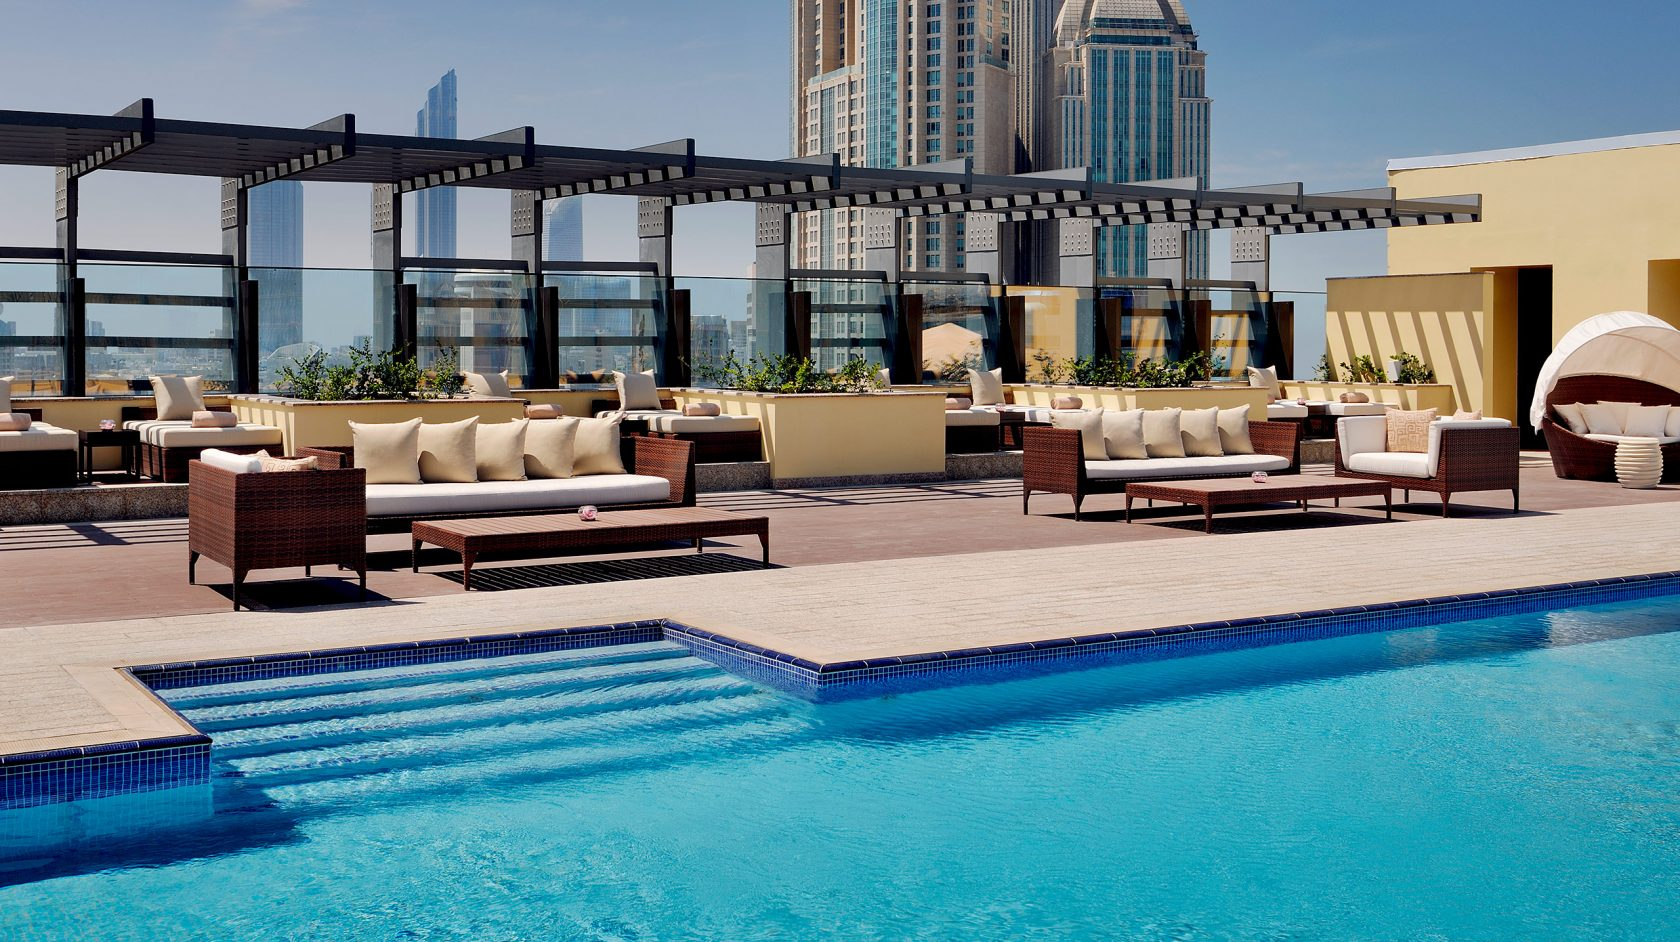 Southern sun abu dhabi hotel business district - Hotels in abu dhabi with swimming pool ...